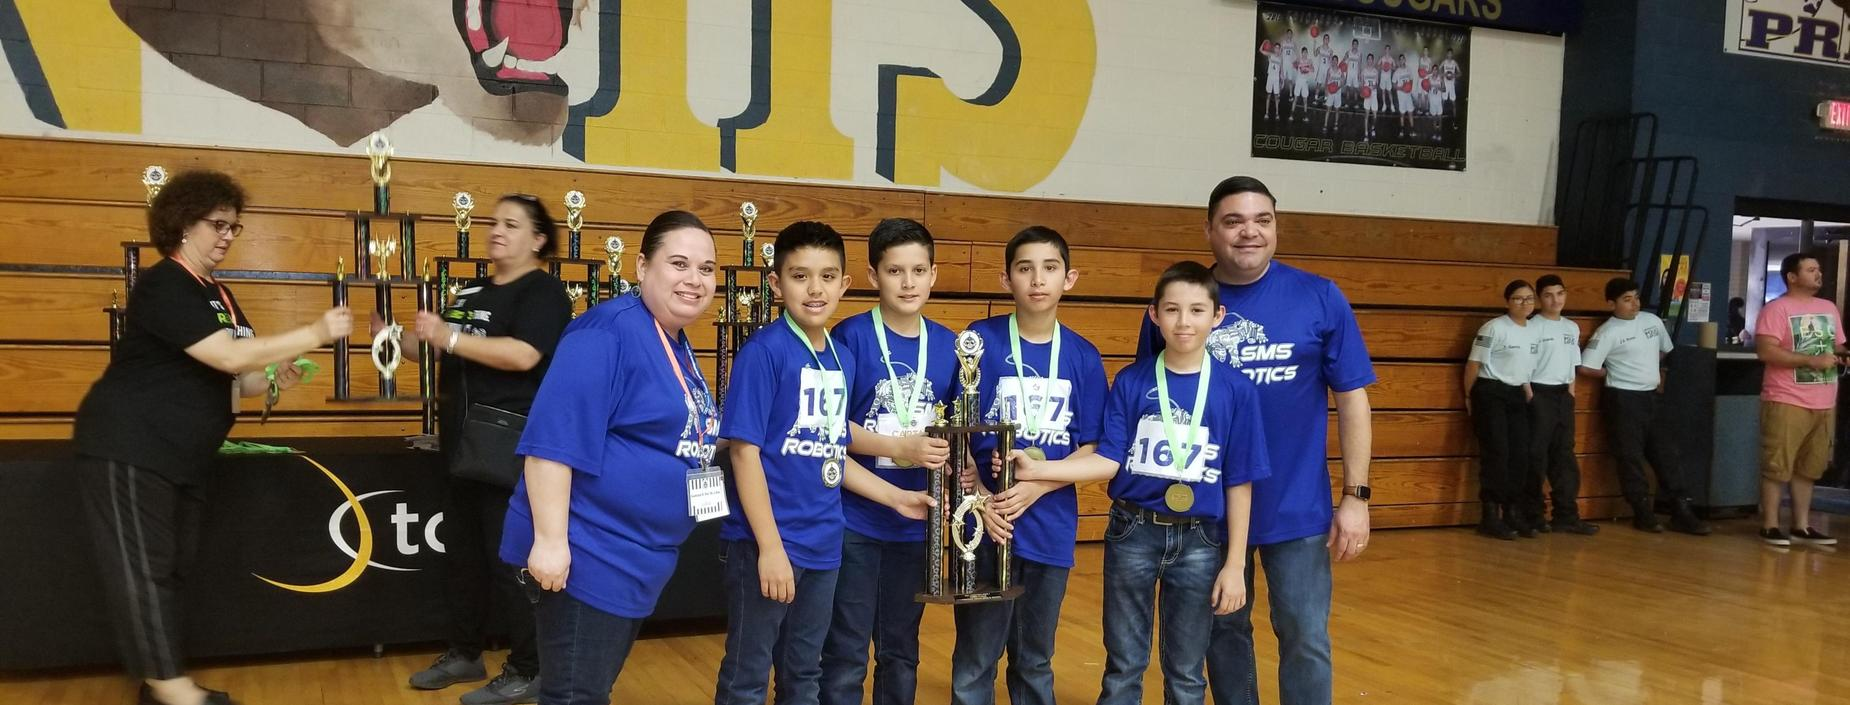 SMS Robotics Team wins 3rd at TCEA Competition